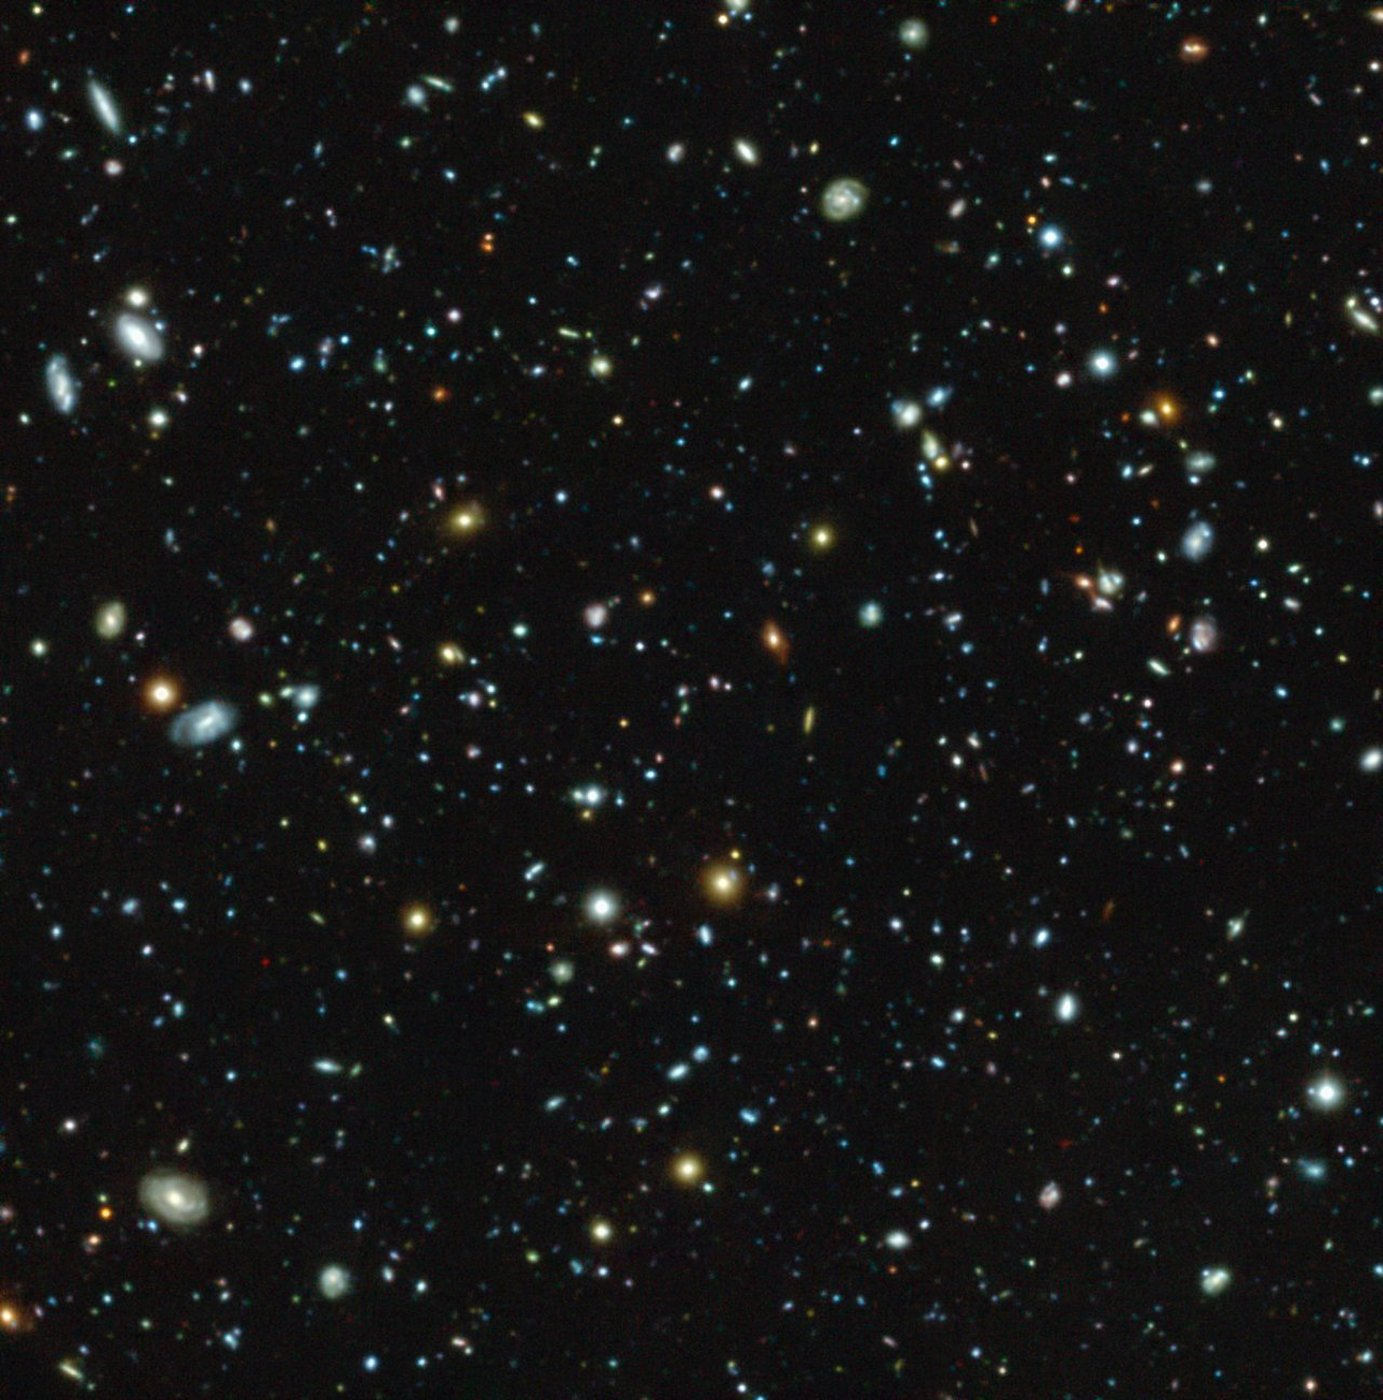 Image: View of the Ultra Deep Field survey via ESO/MUSE HUDF Collaboration